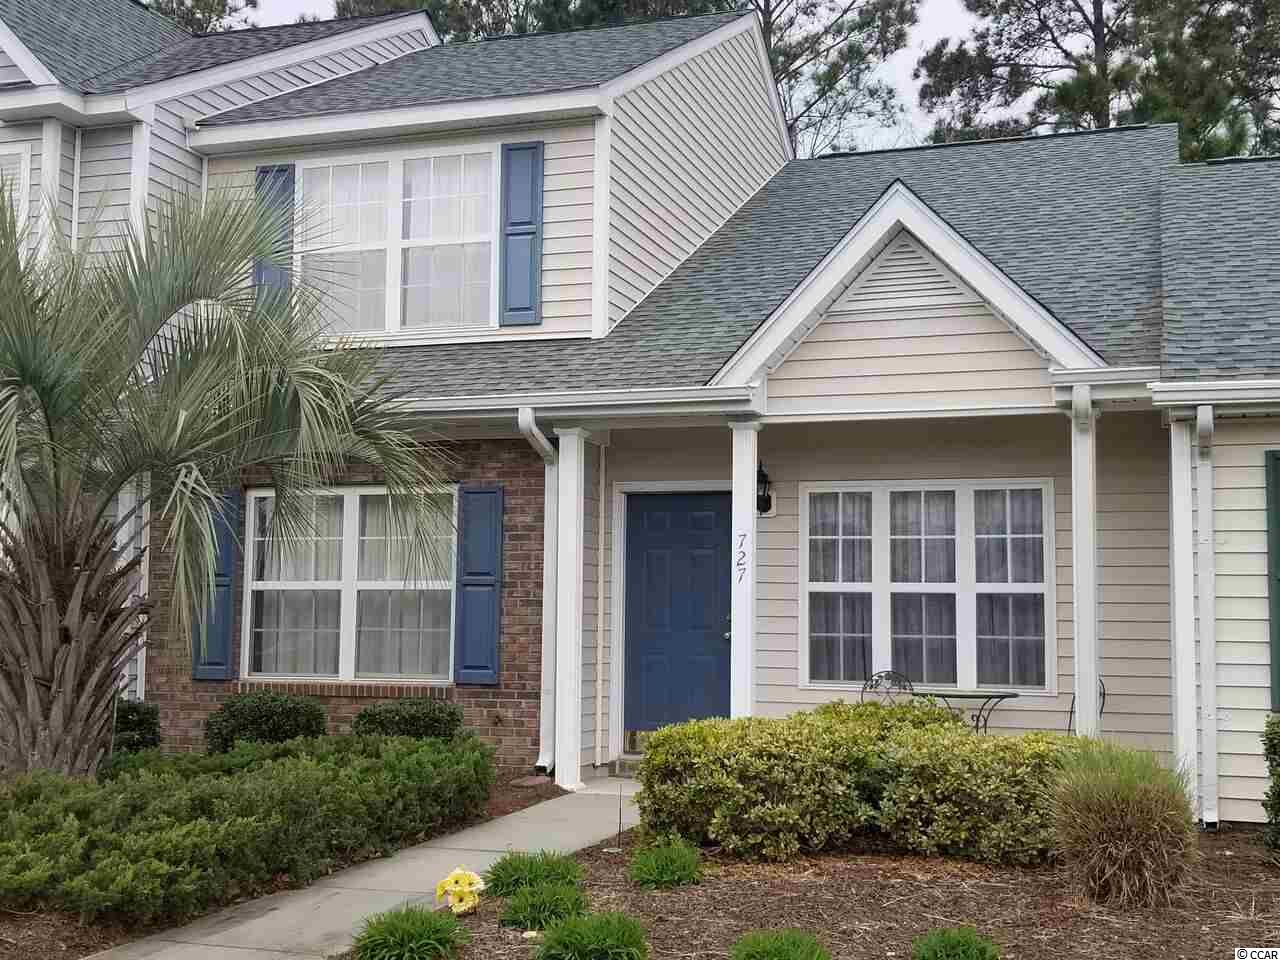 Townhouse MLS:1804800 WYNBROOKE TWNHM - Townhomes  727 Wilshire Ln. Murrells Inlet SC